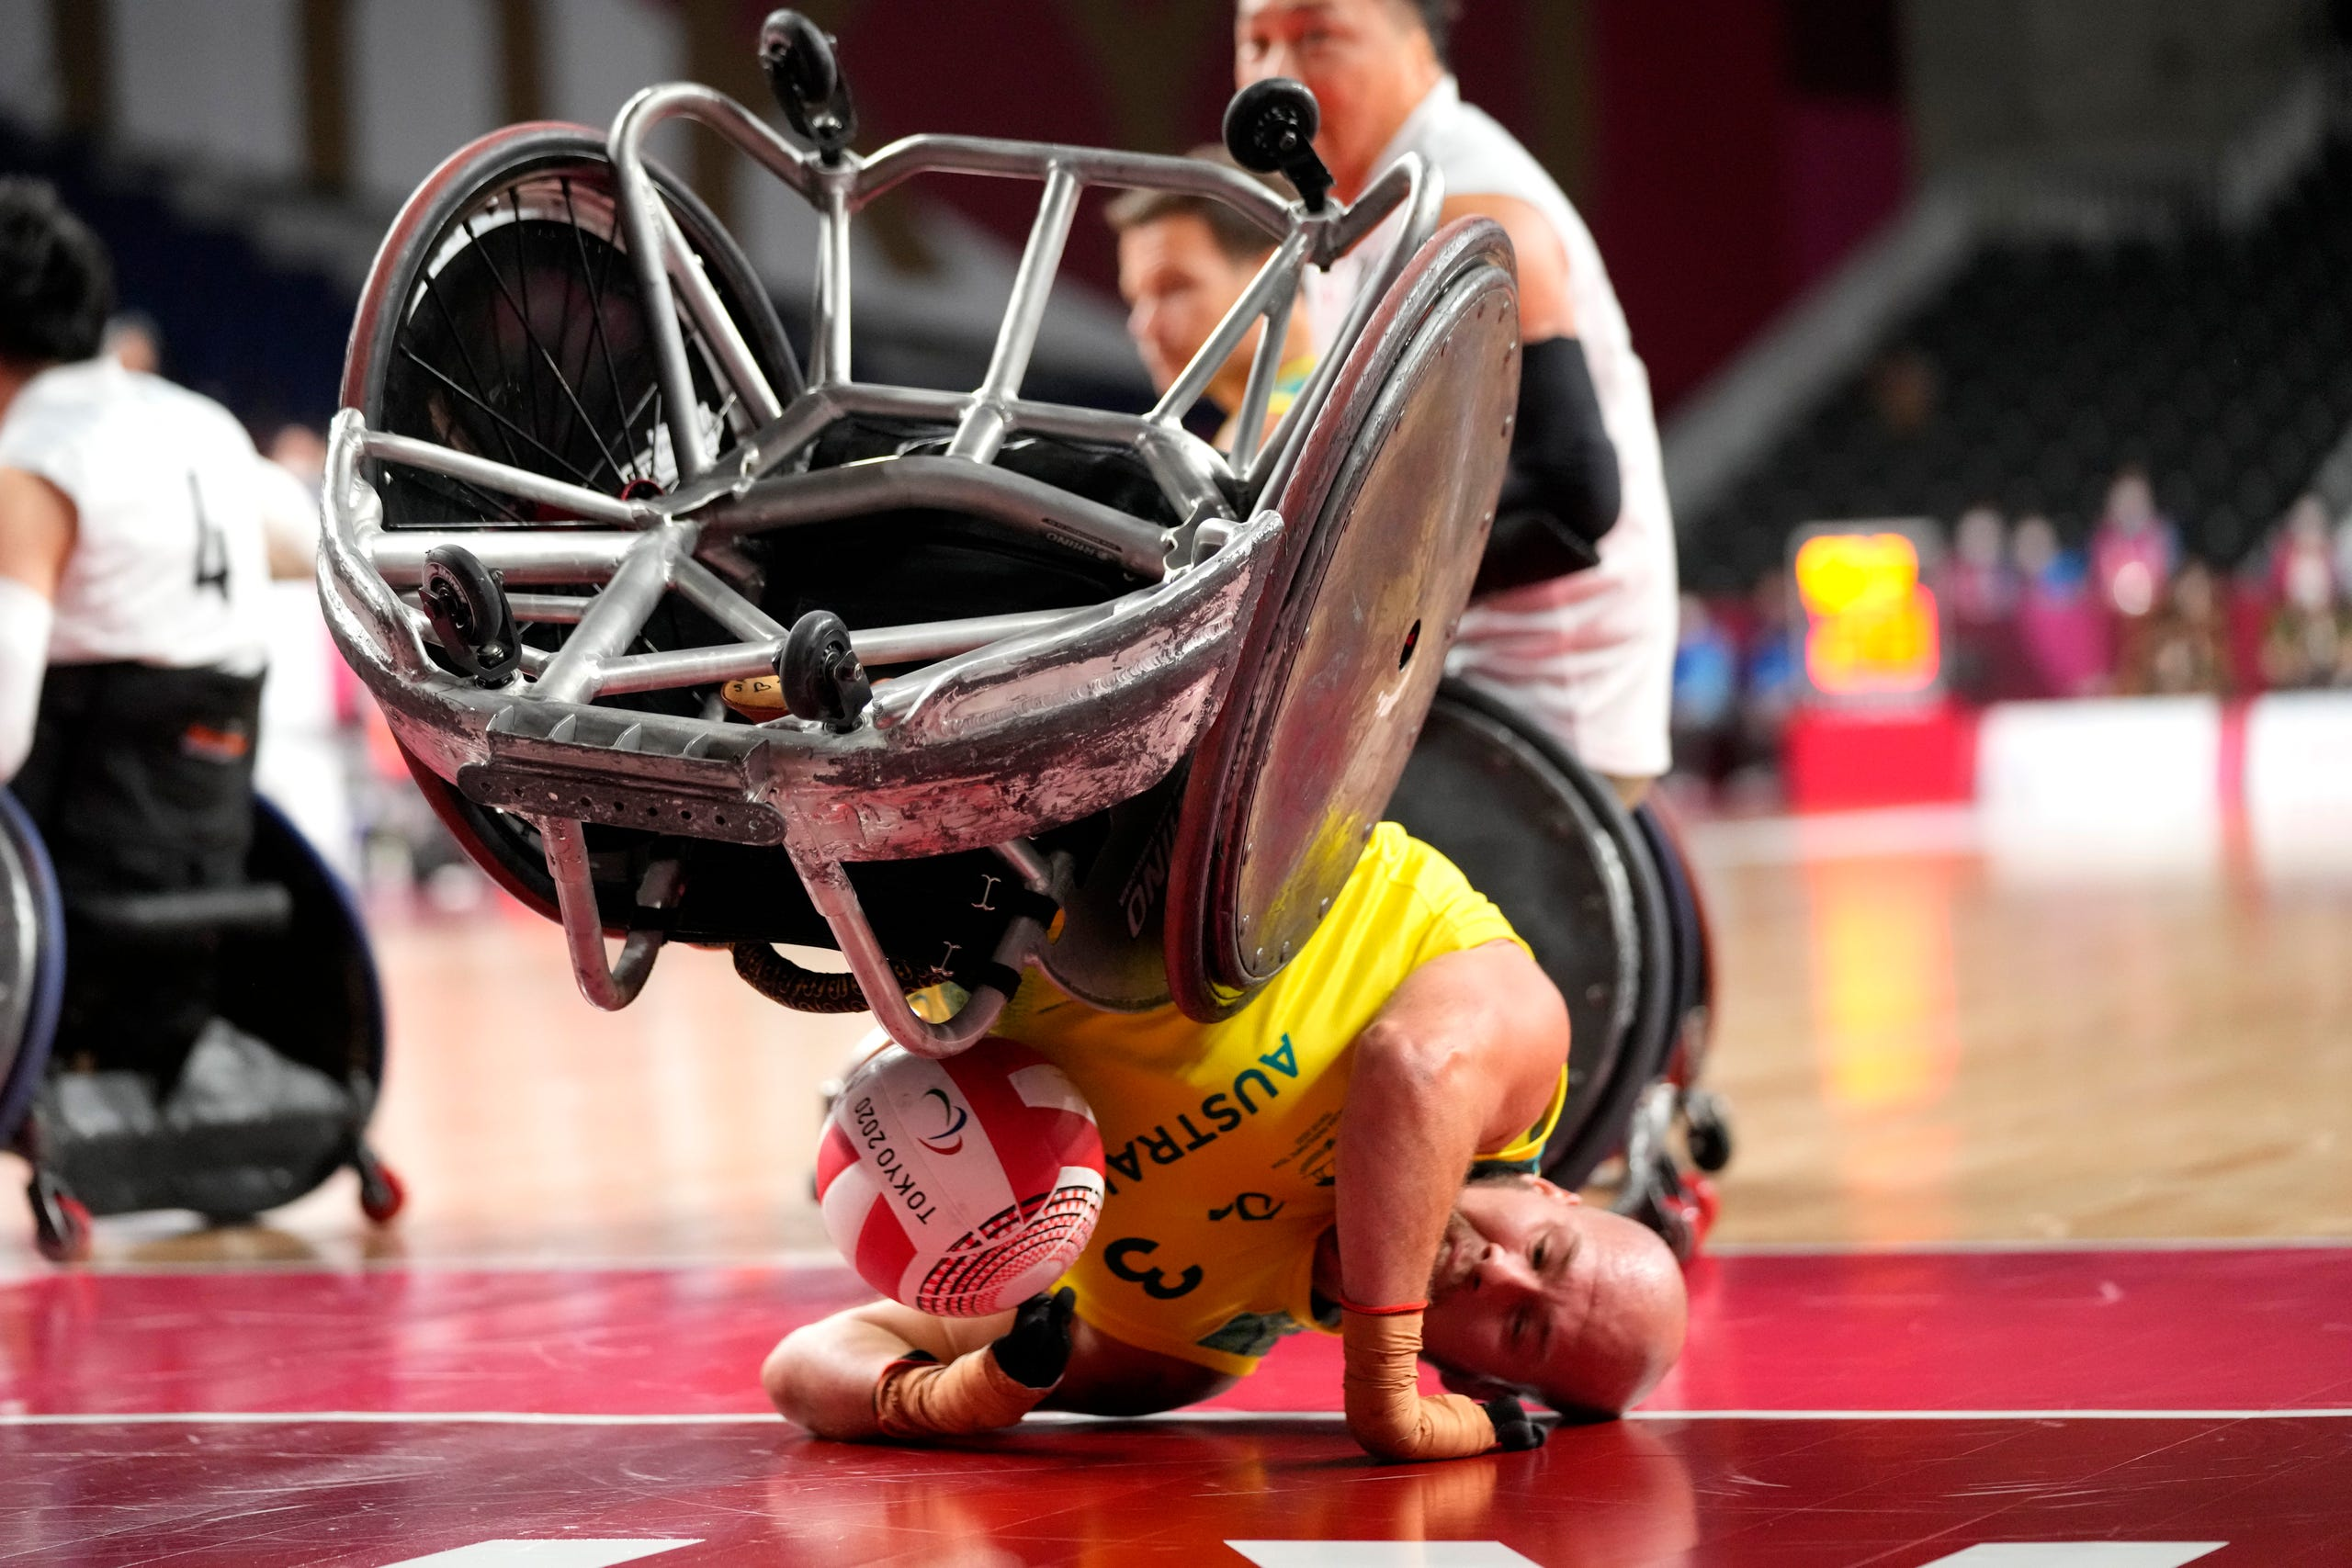 August 29, 2021: Australia's Ryley Batt falls during the wheelchair rugby bronze medal match against Japan at the Tokyo 2020 Paralympic Games in Tokyo, Japan.